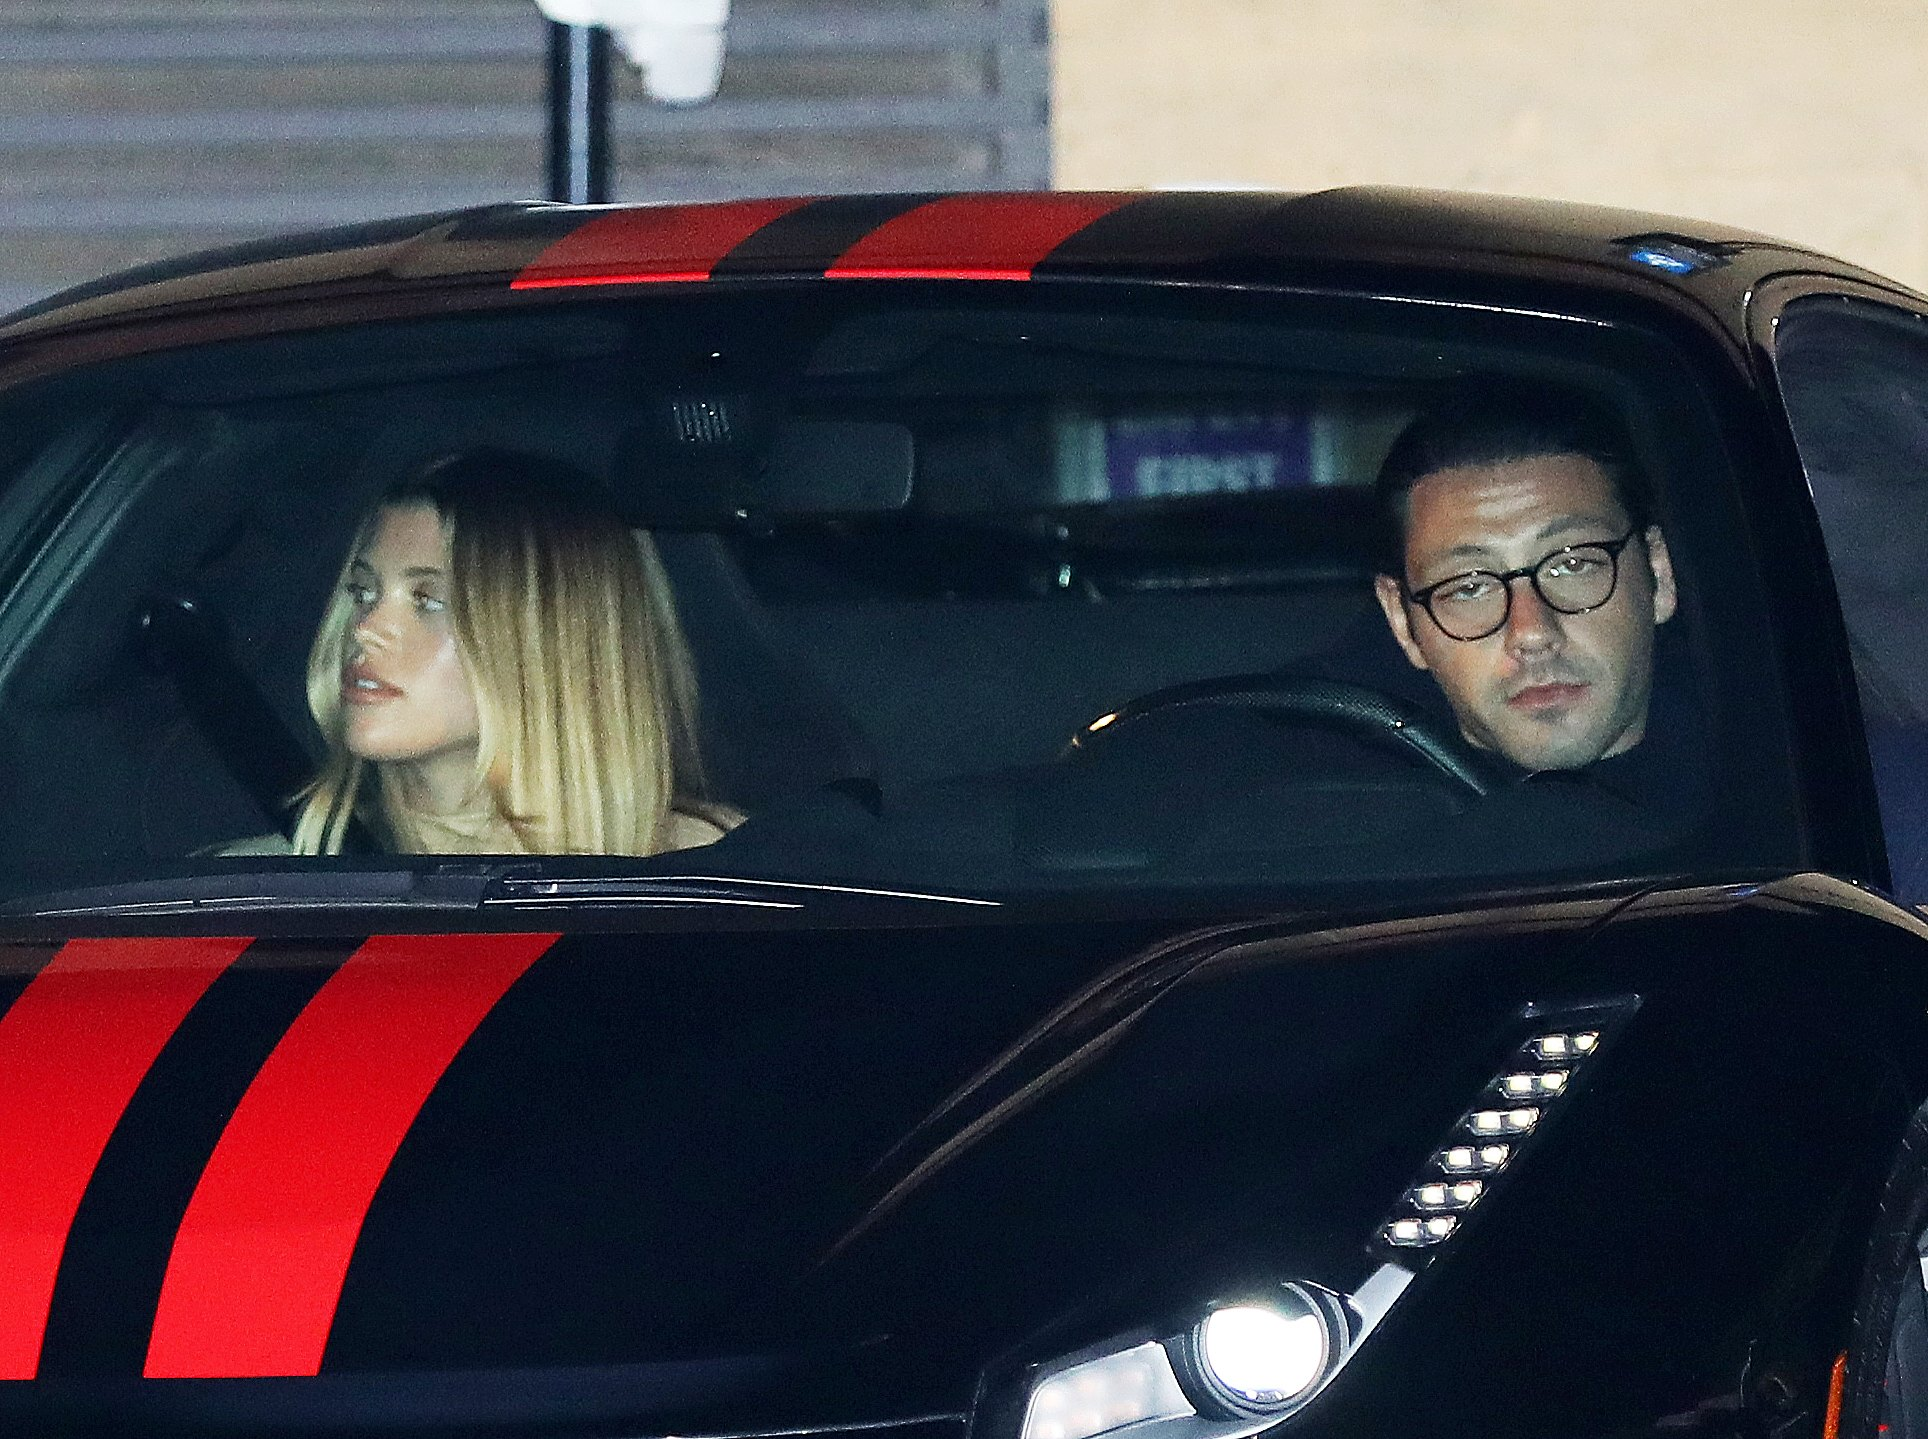 sofia-richie-gil-ofers-relationshipstatus-revealed-after-hot-pda-pics-frommiami-emerge